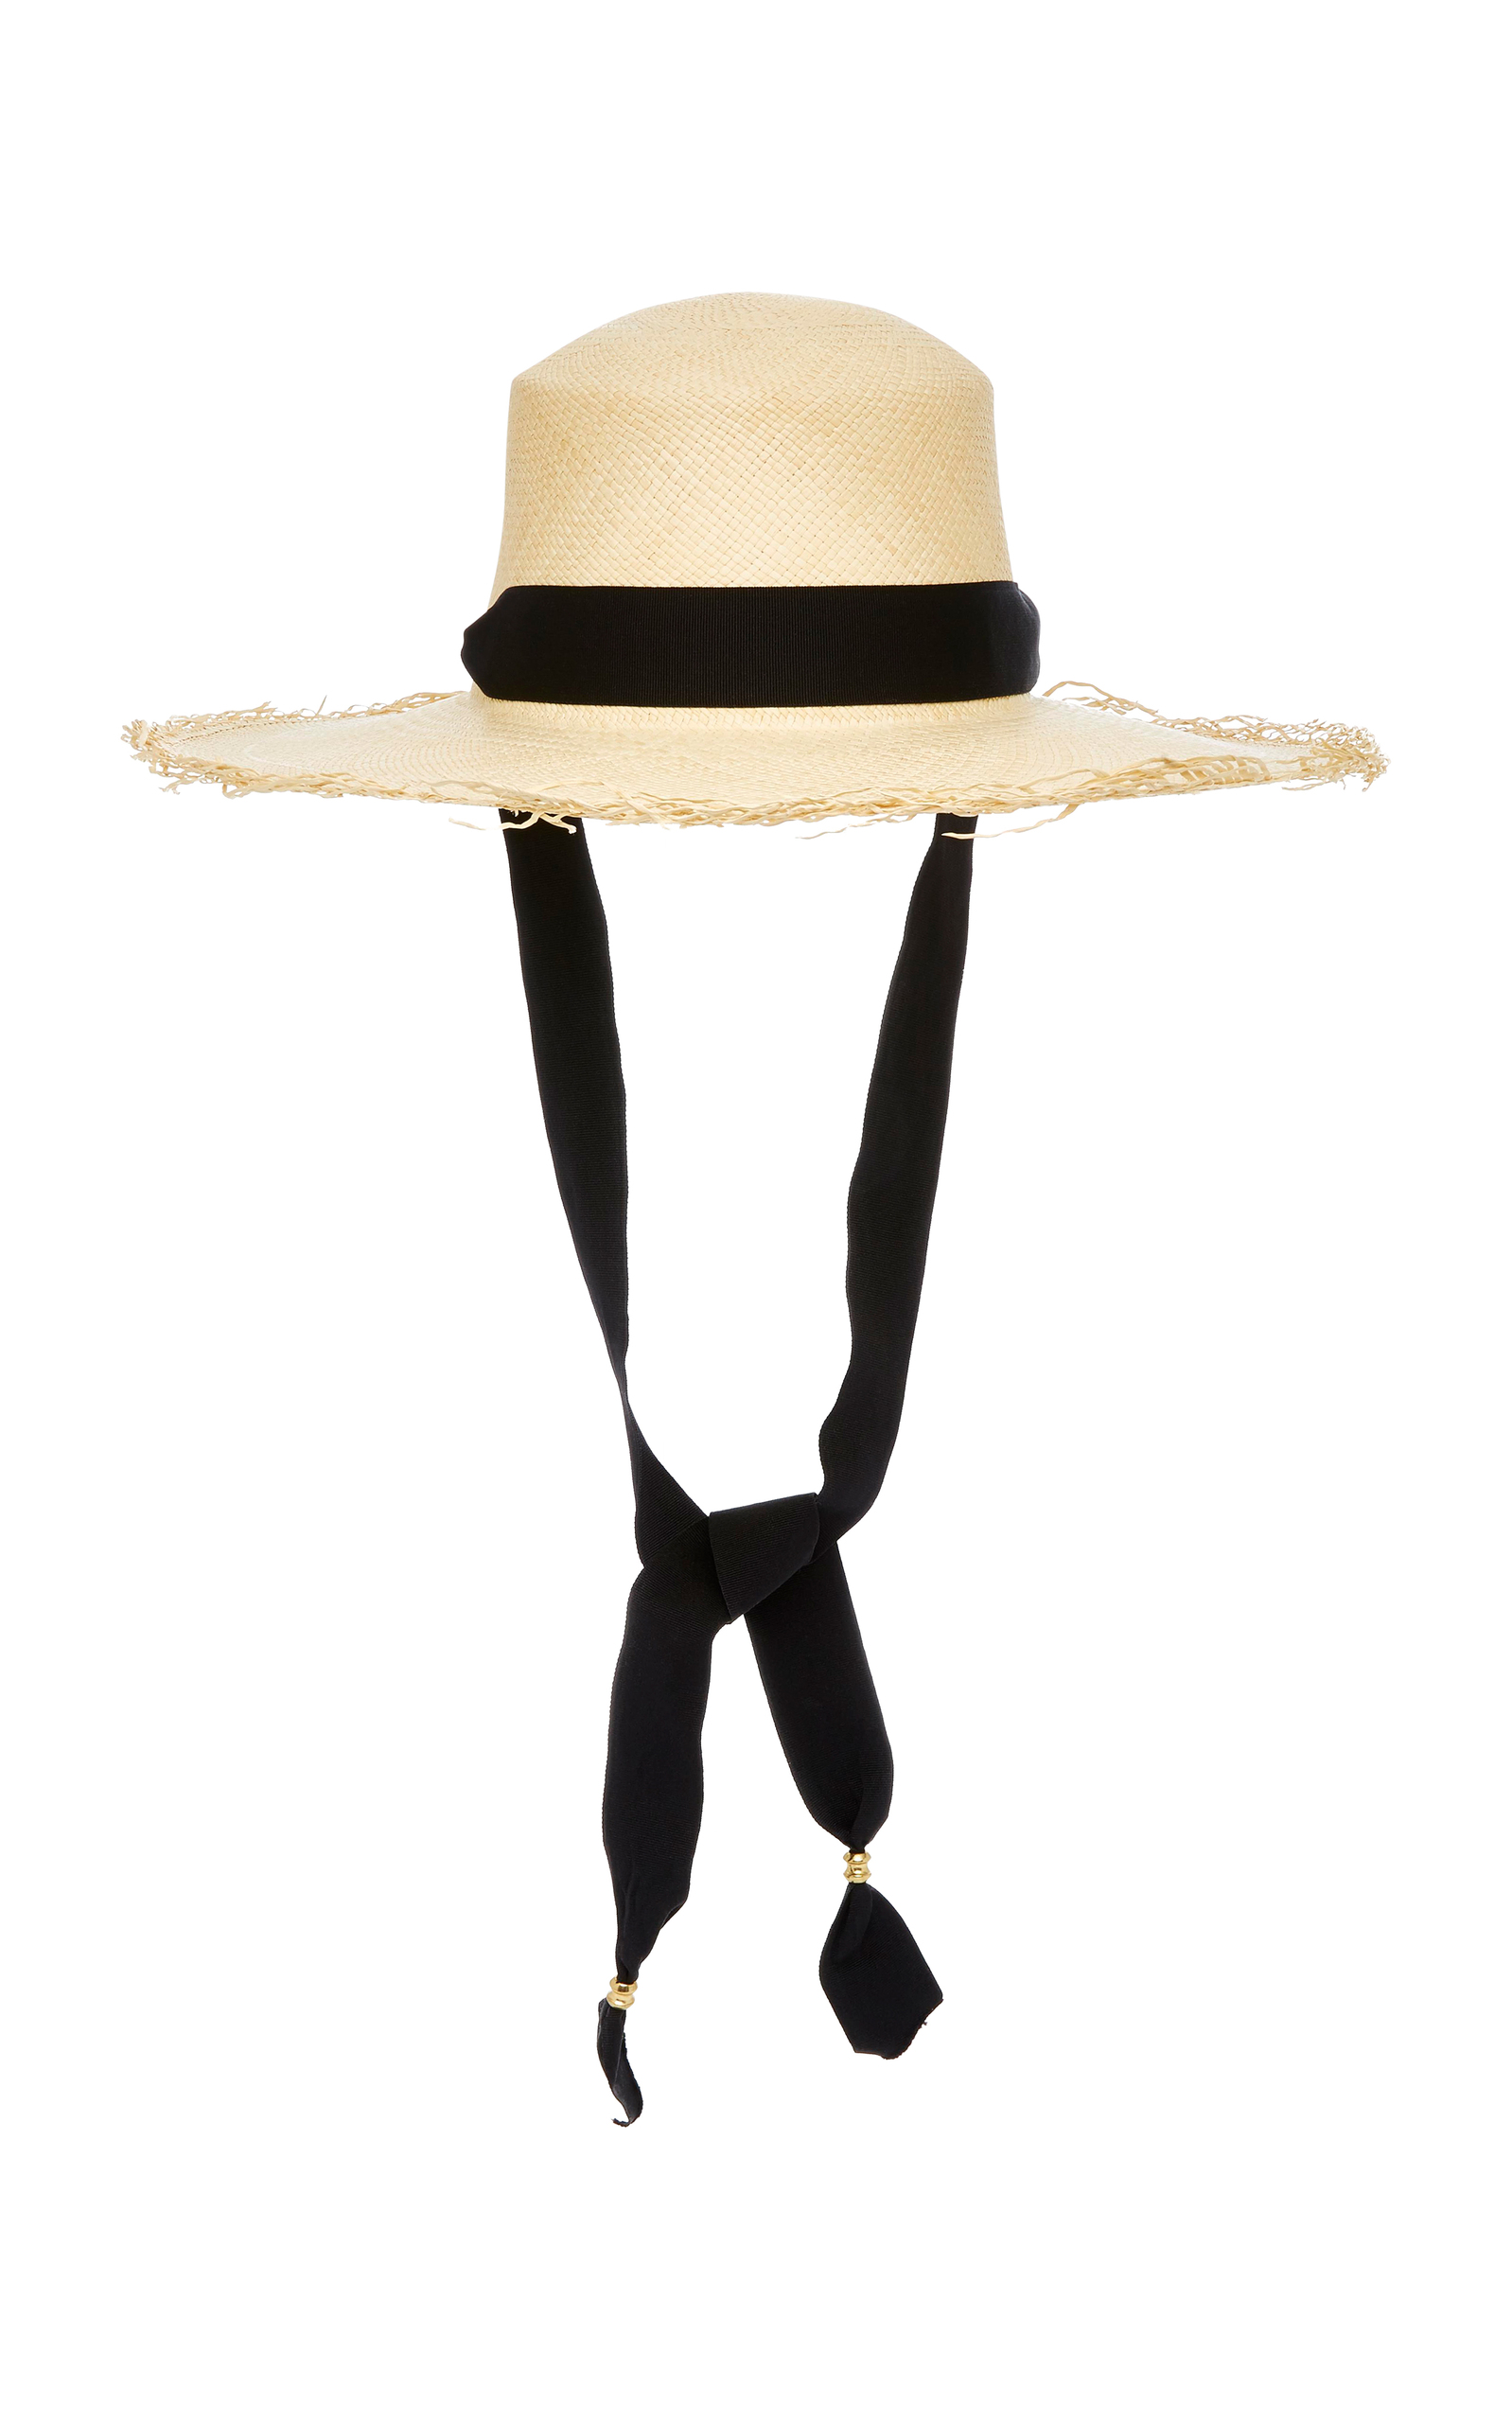 c5816046e18 Frayed Woven Straw Boater Hat With Adjustable Band by Sensi Studio ...